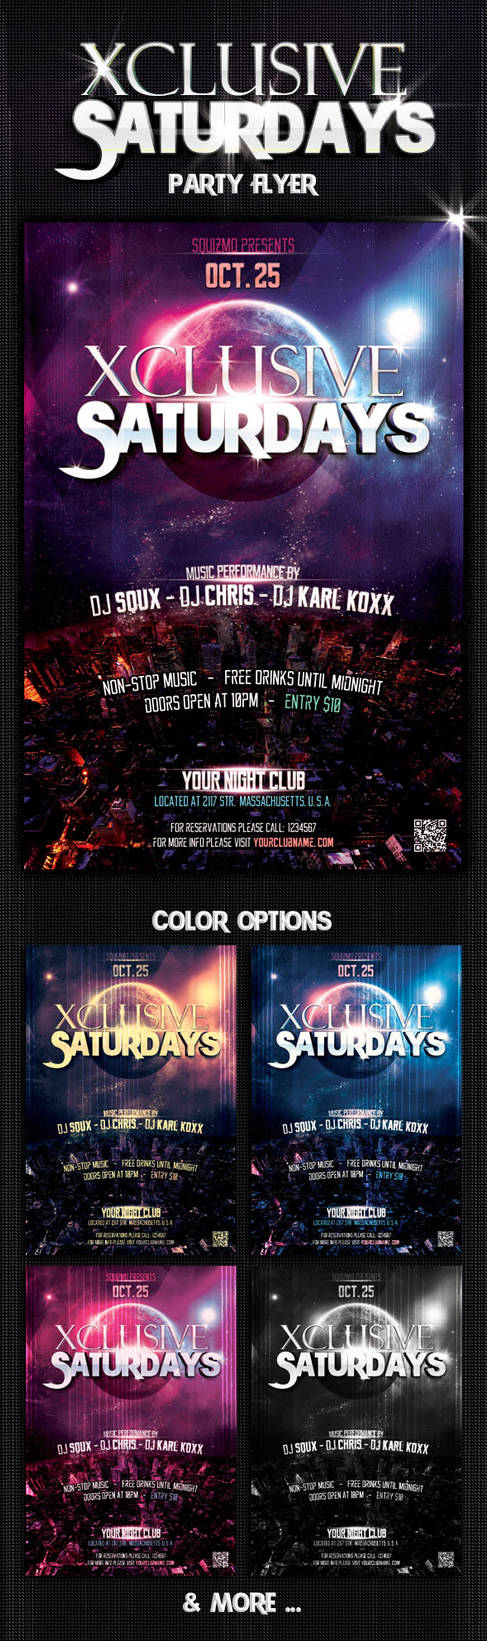 Xclusive Saturdays Party Flyer by squizmo